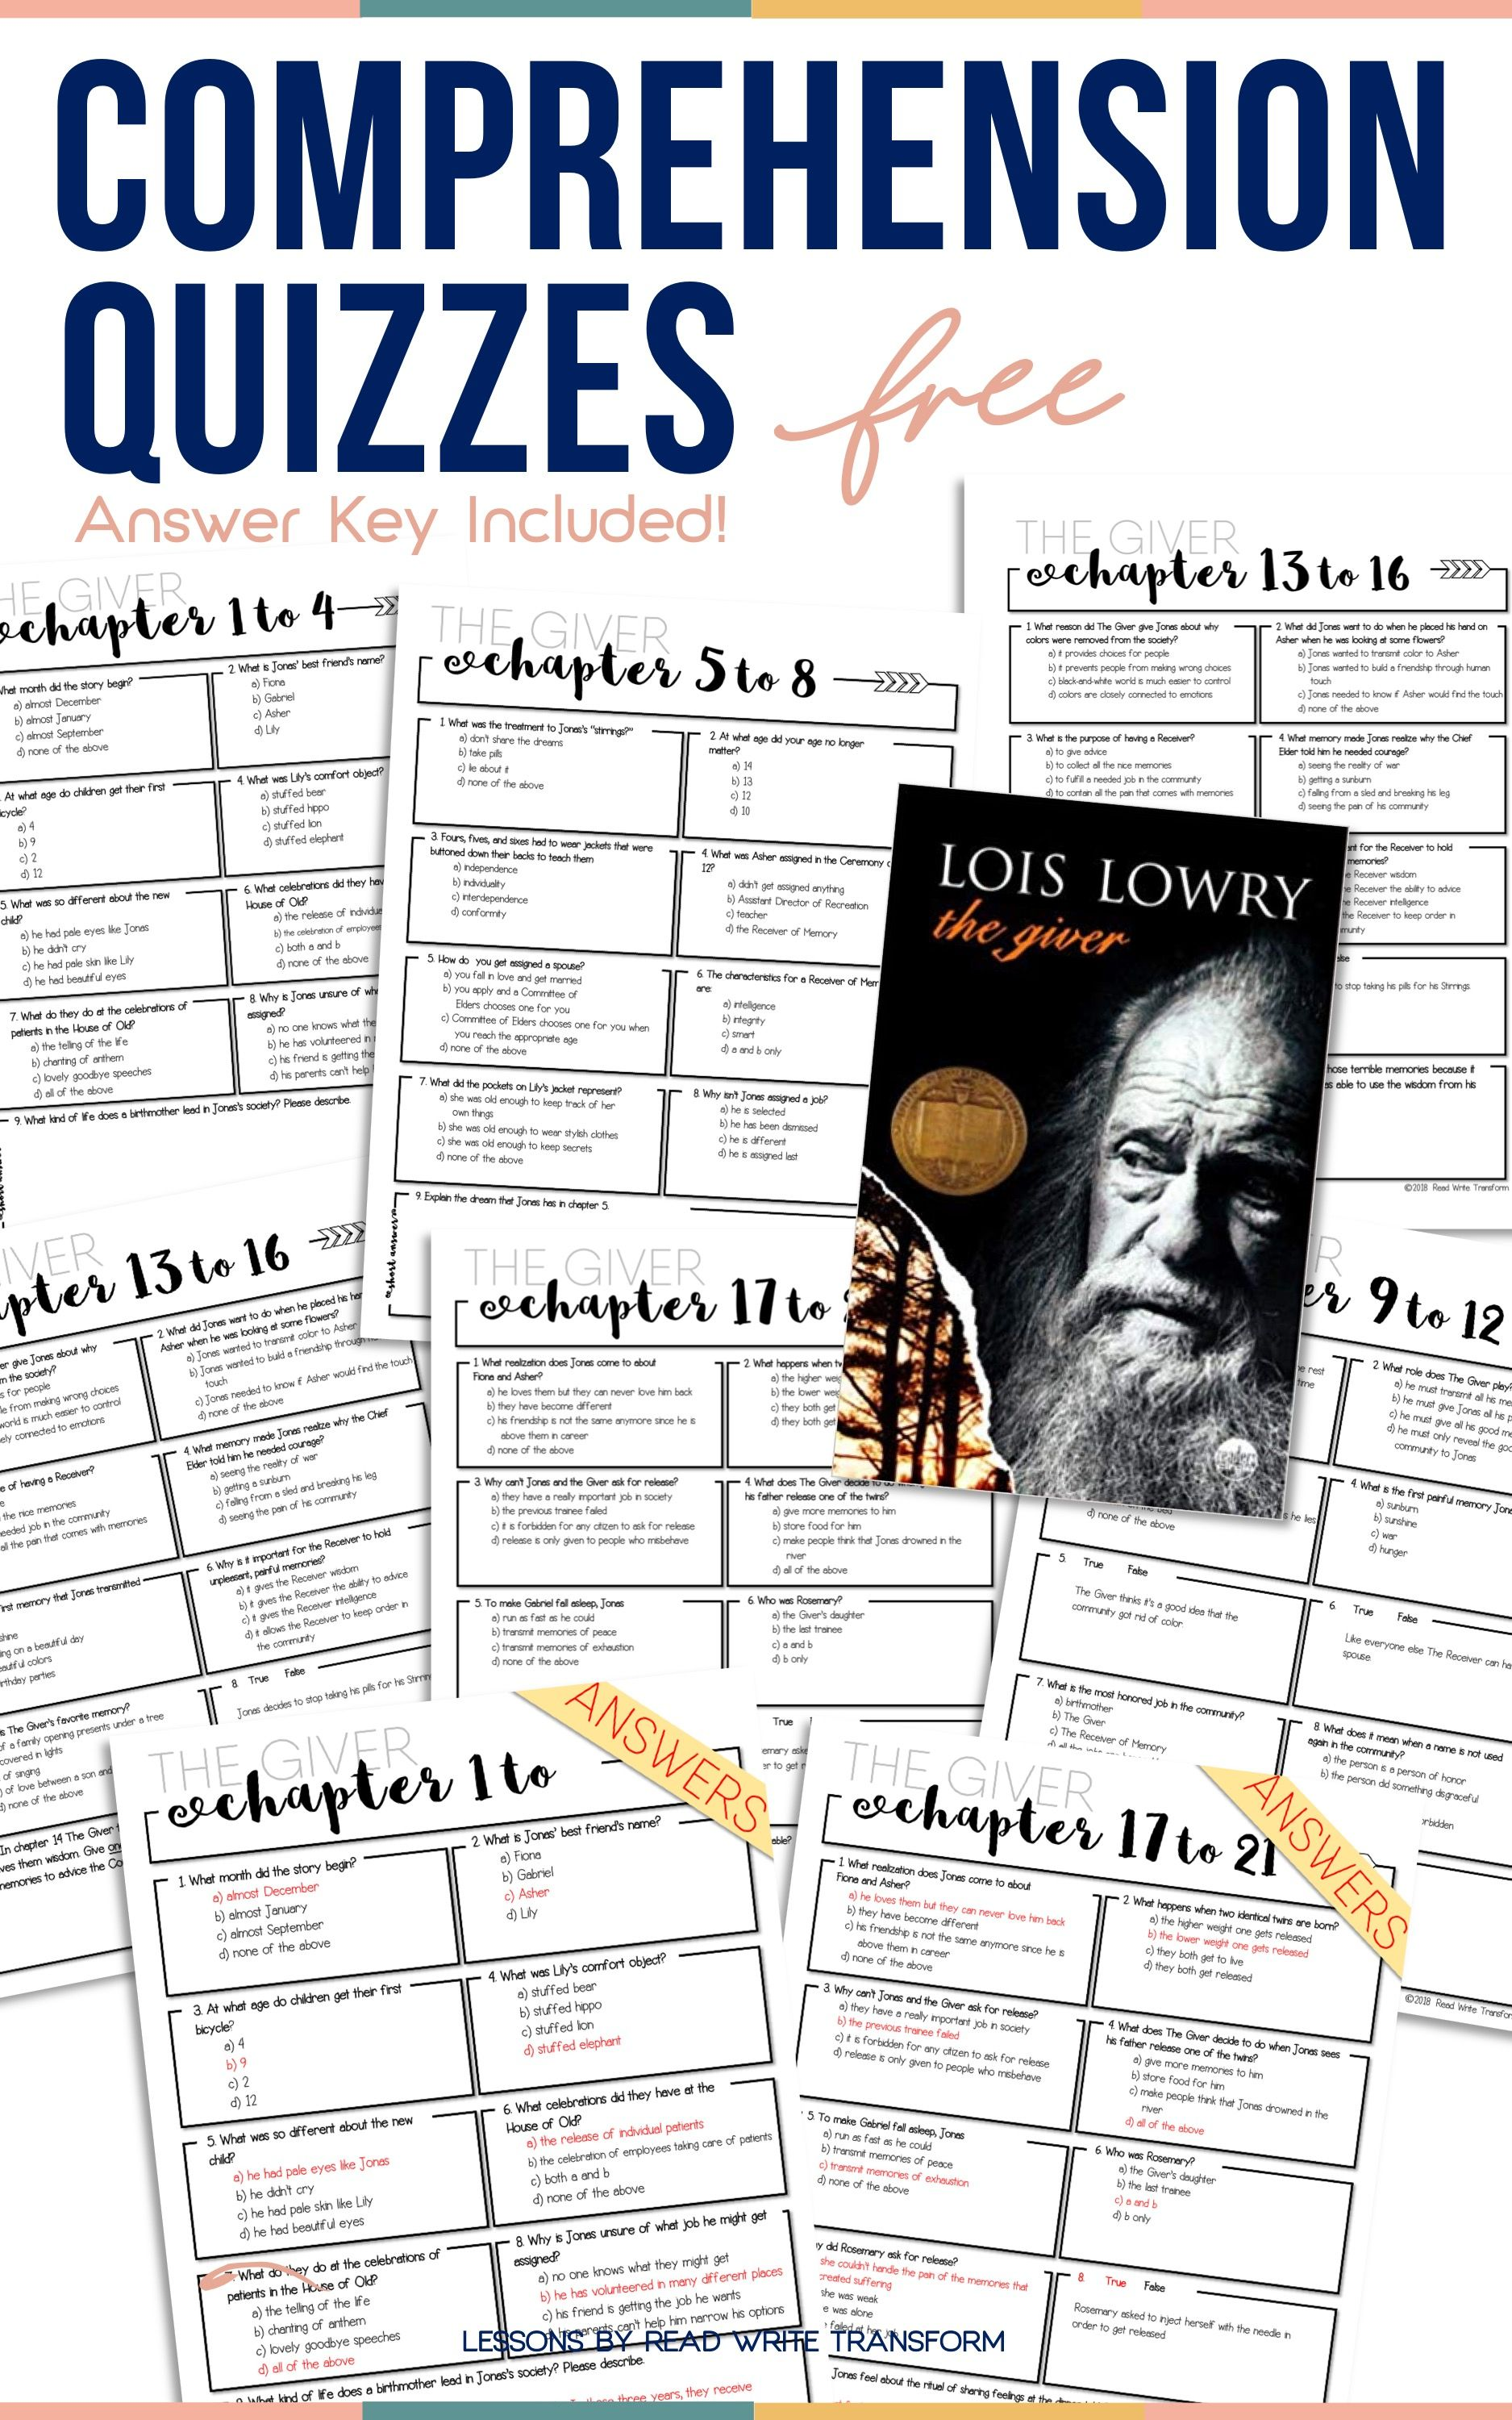 Free The Giver Chapter Quizzes Answer Key Provided